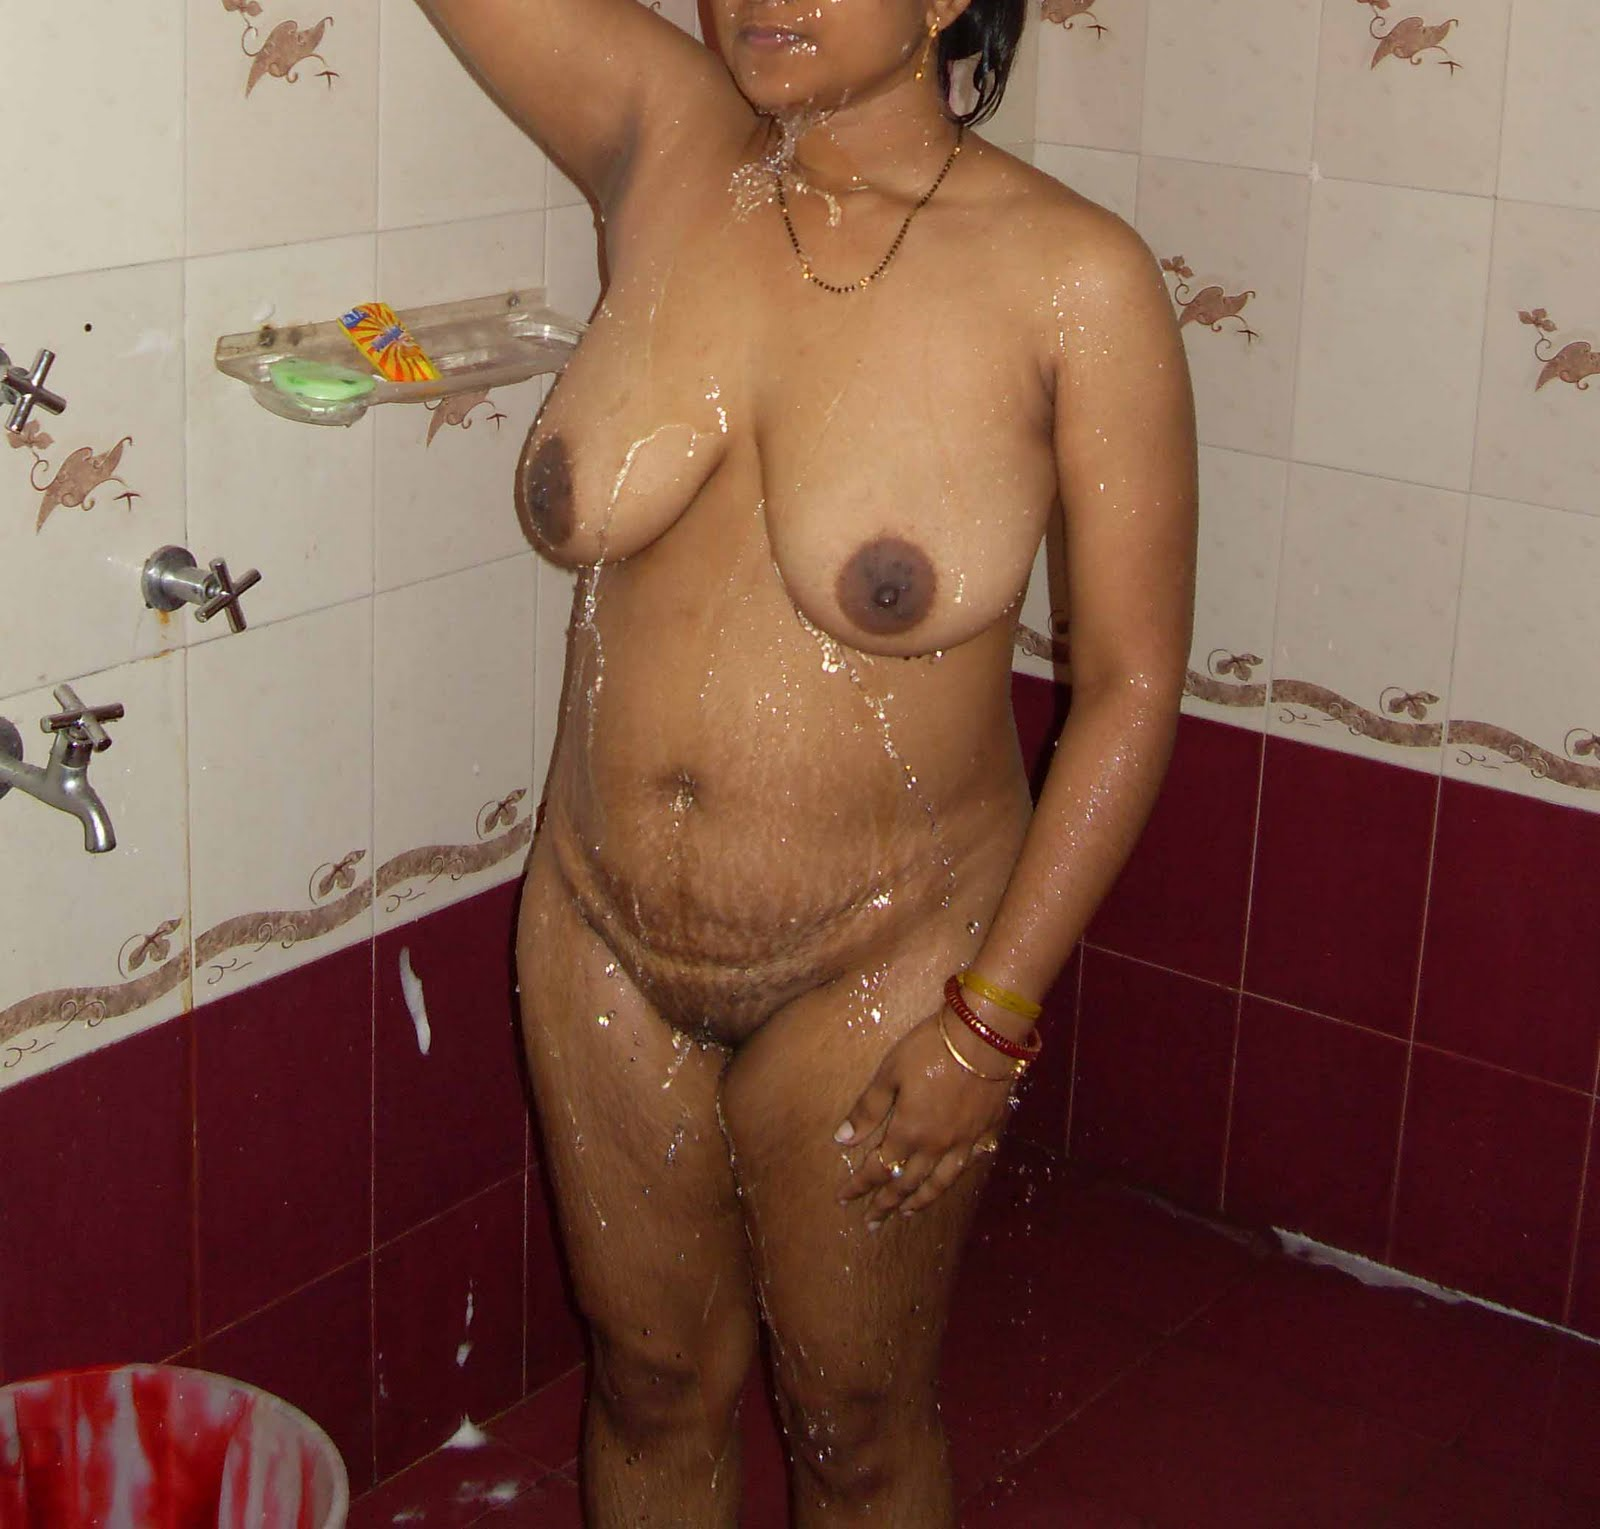 Desi Aunty Bathing Nude Showing Boobs Pics - Stars With -4137